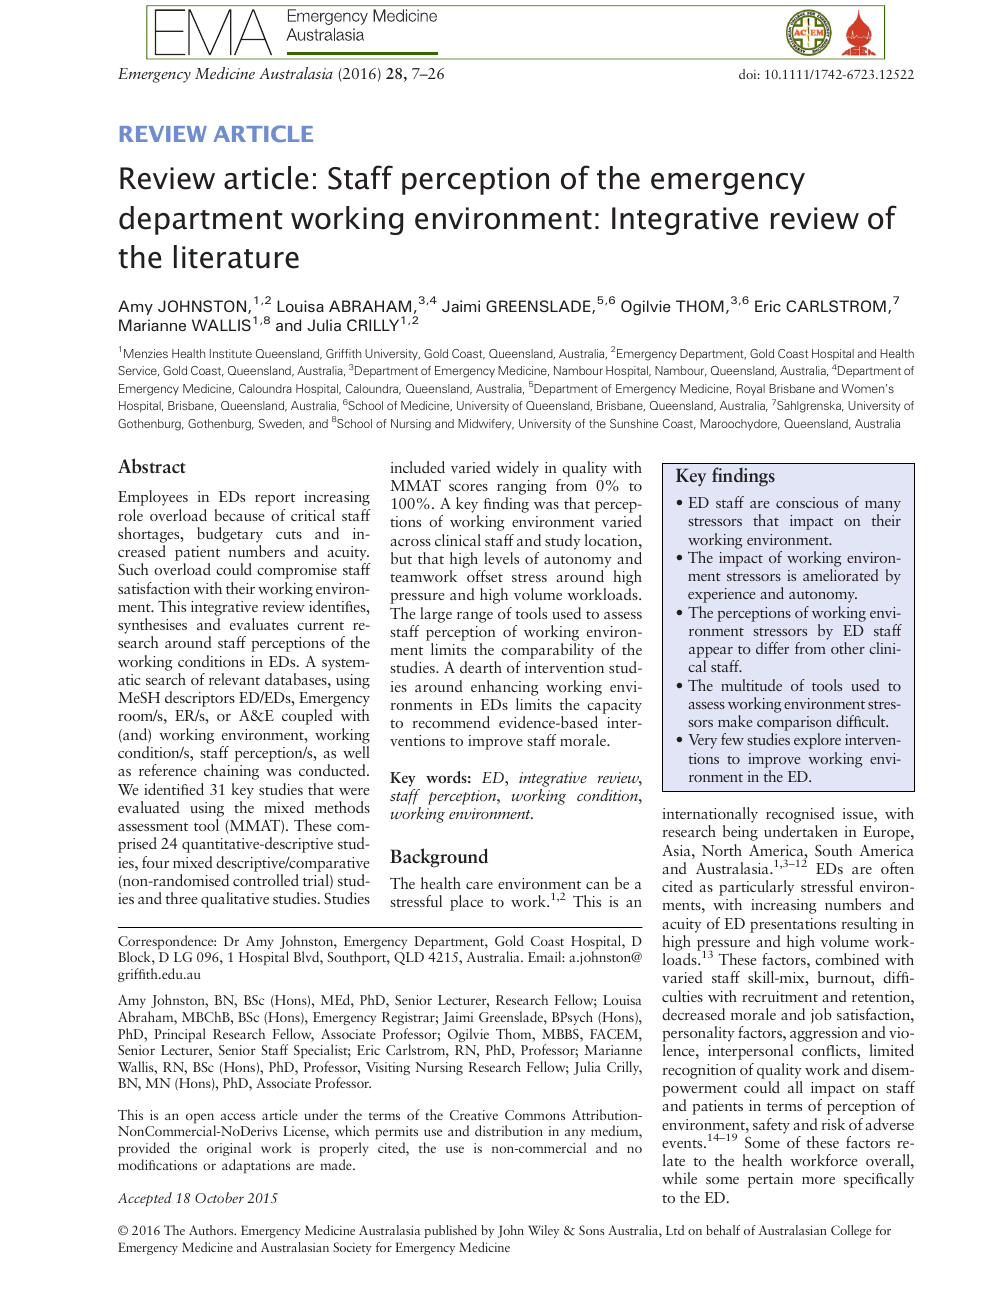 Review article: Staff perception of the emergency department